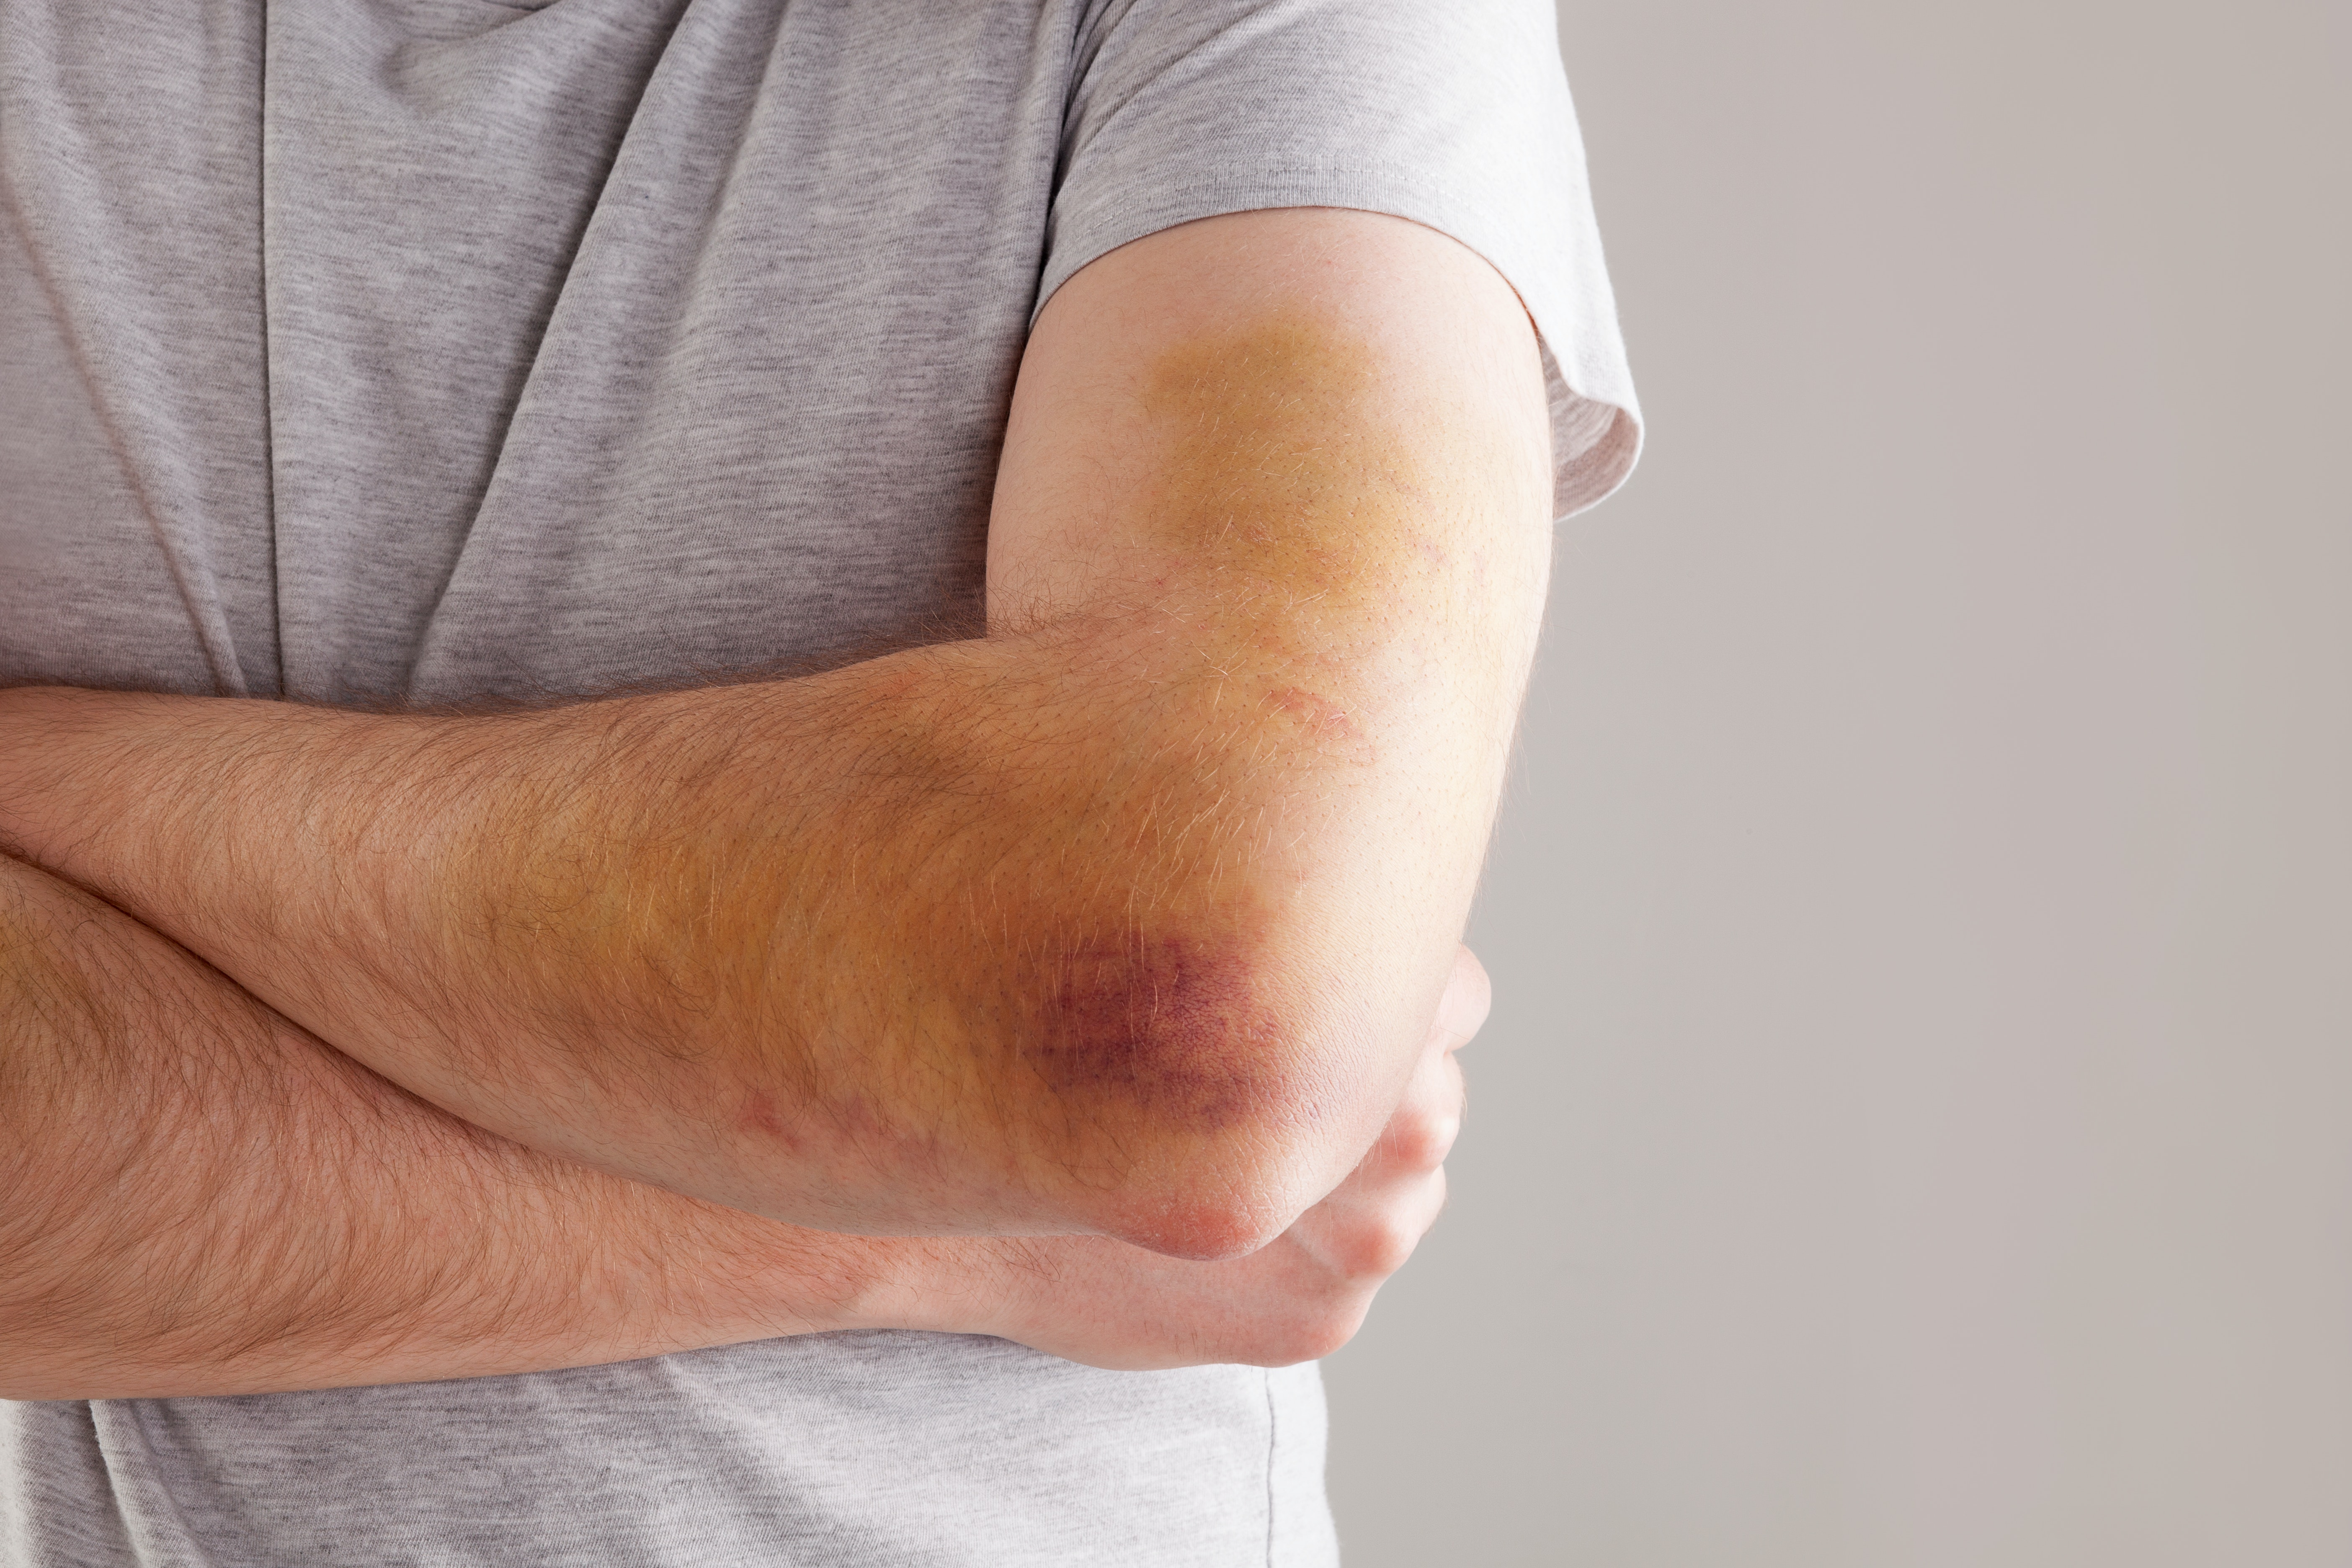 An image depicting a person suffering from forearm bruise symptoms